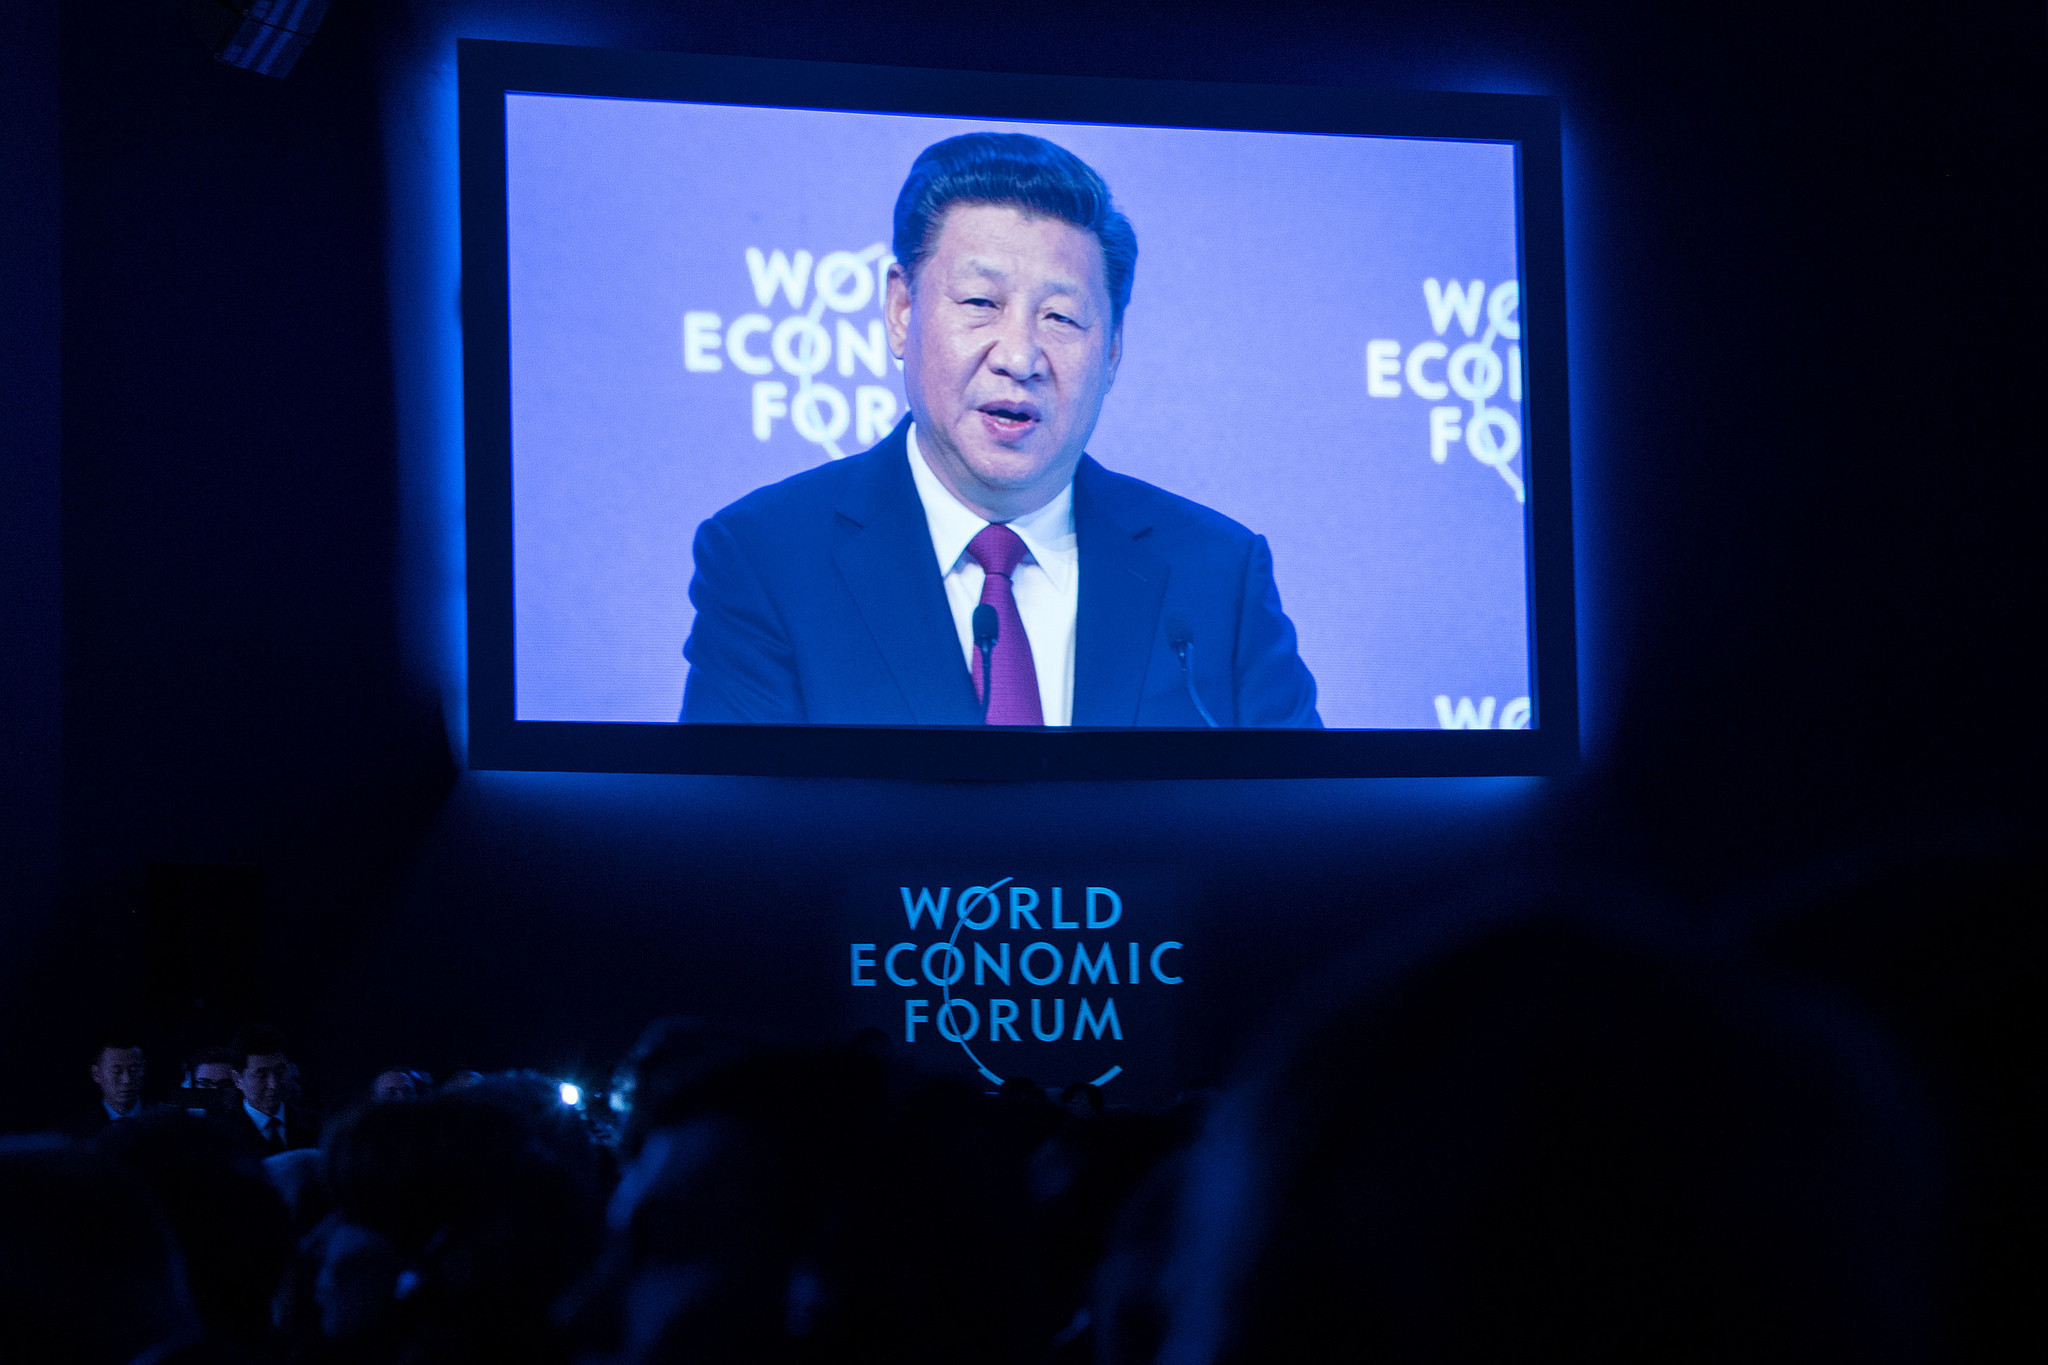 Xi Jinping, President of the People's Republic of China, delivers a speech to Davos participants